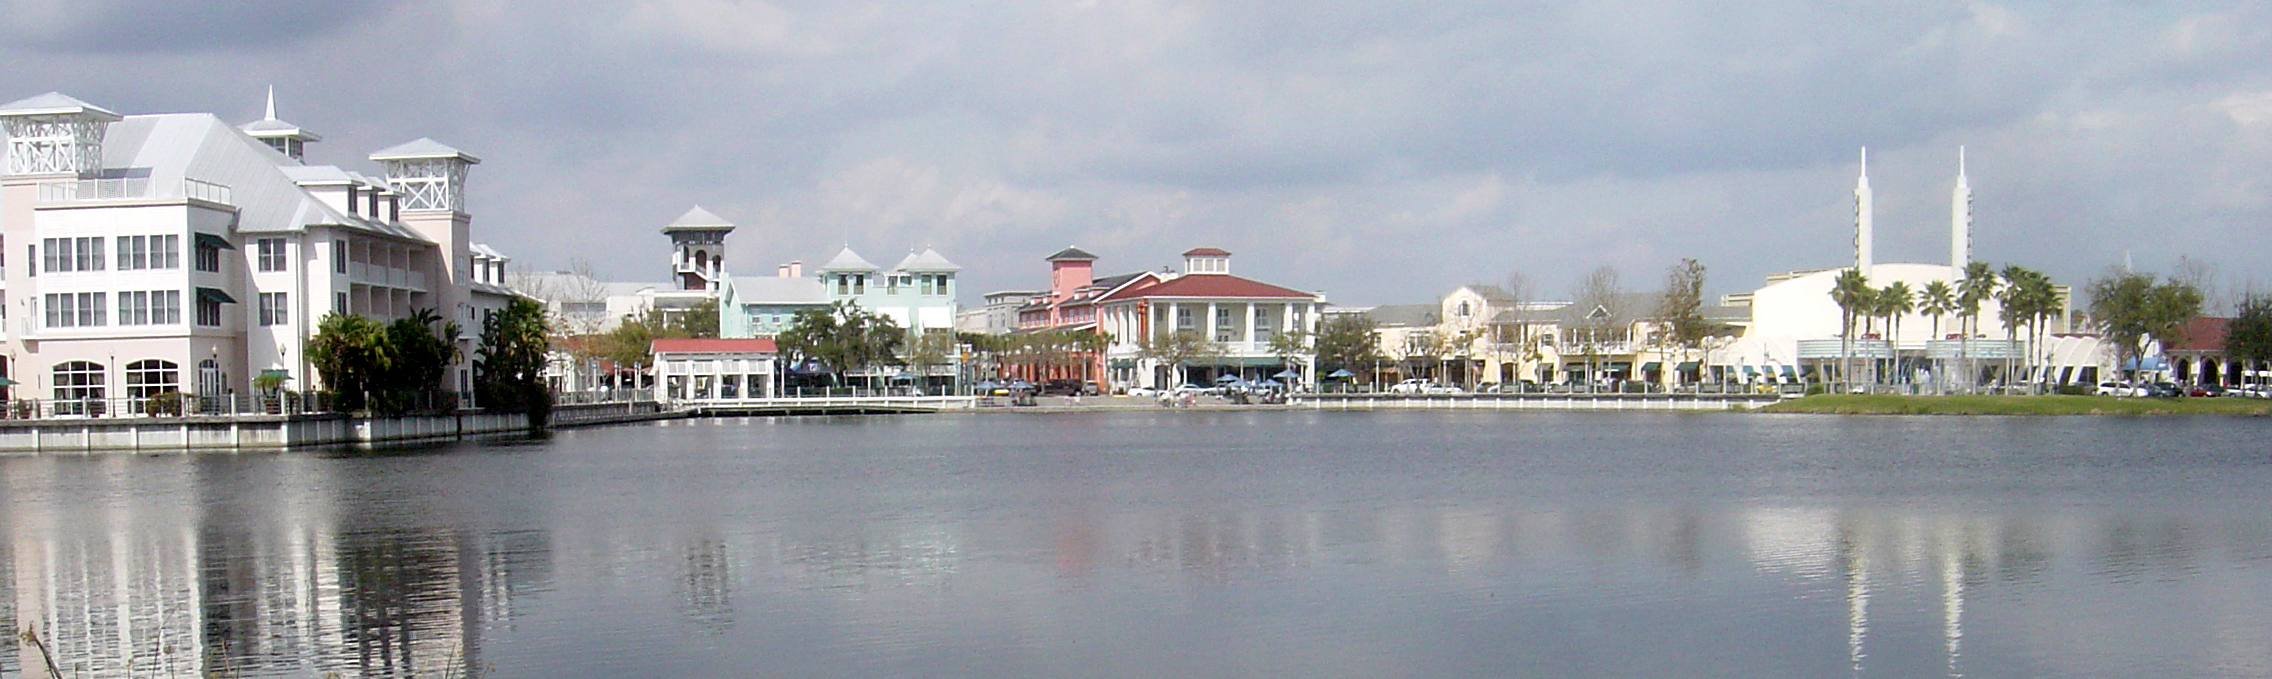 Essays On High School A View Of Downtown Celebration Florida The City Was Planned By The Walt  Disney Short English Essays For Students also Personal Essay Thesis Statement Themes In The Text The Handsomest Drowned Man In The World By  Expository Essay Thesis Statement Examples